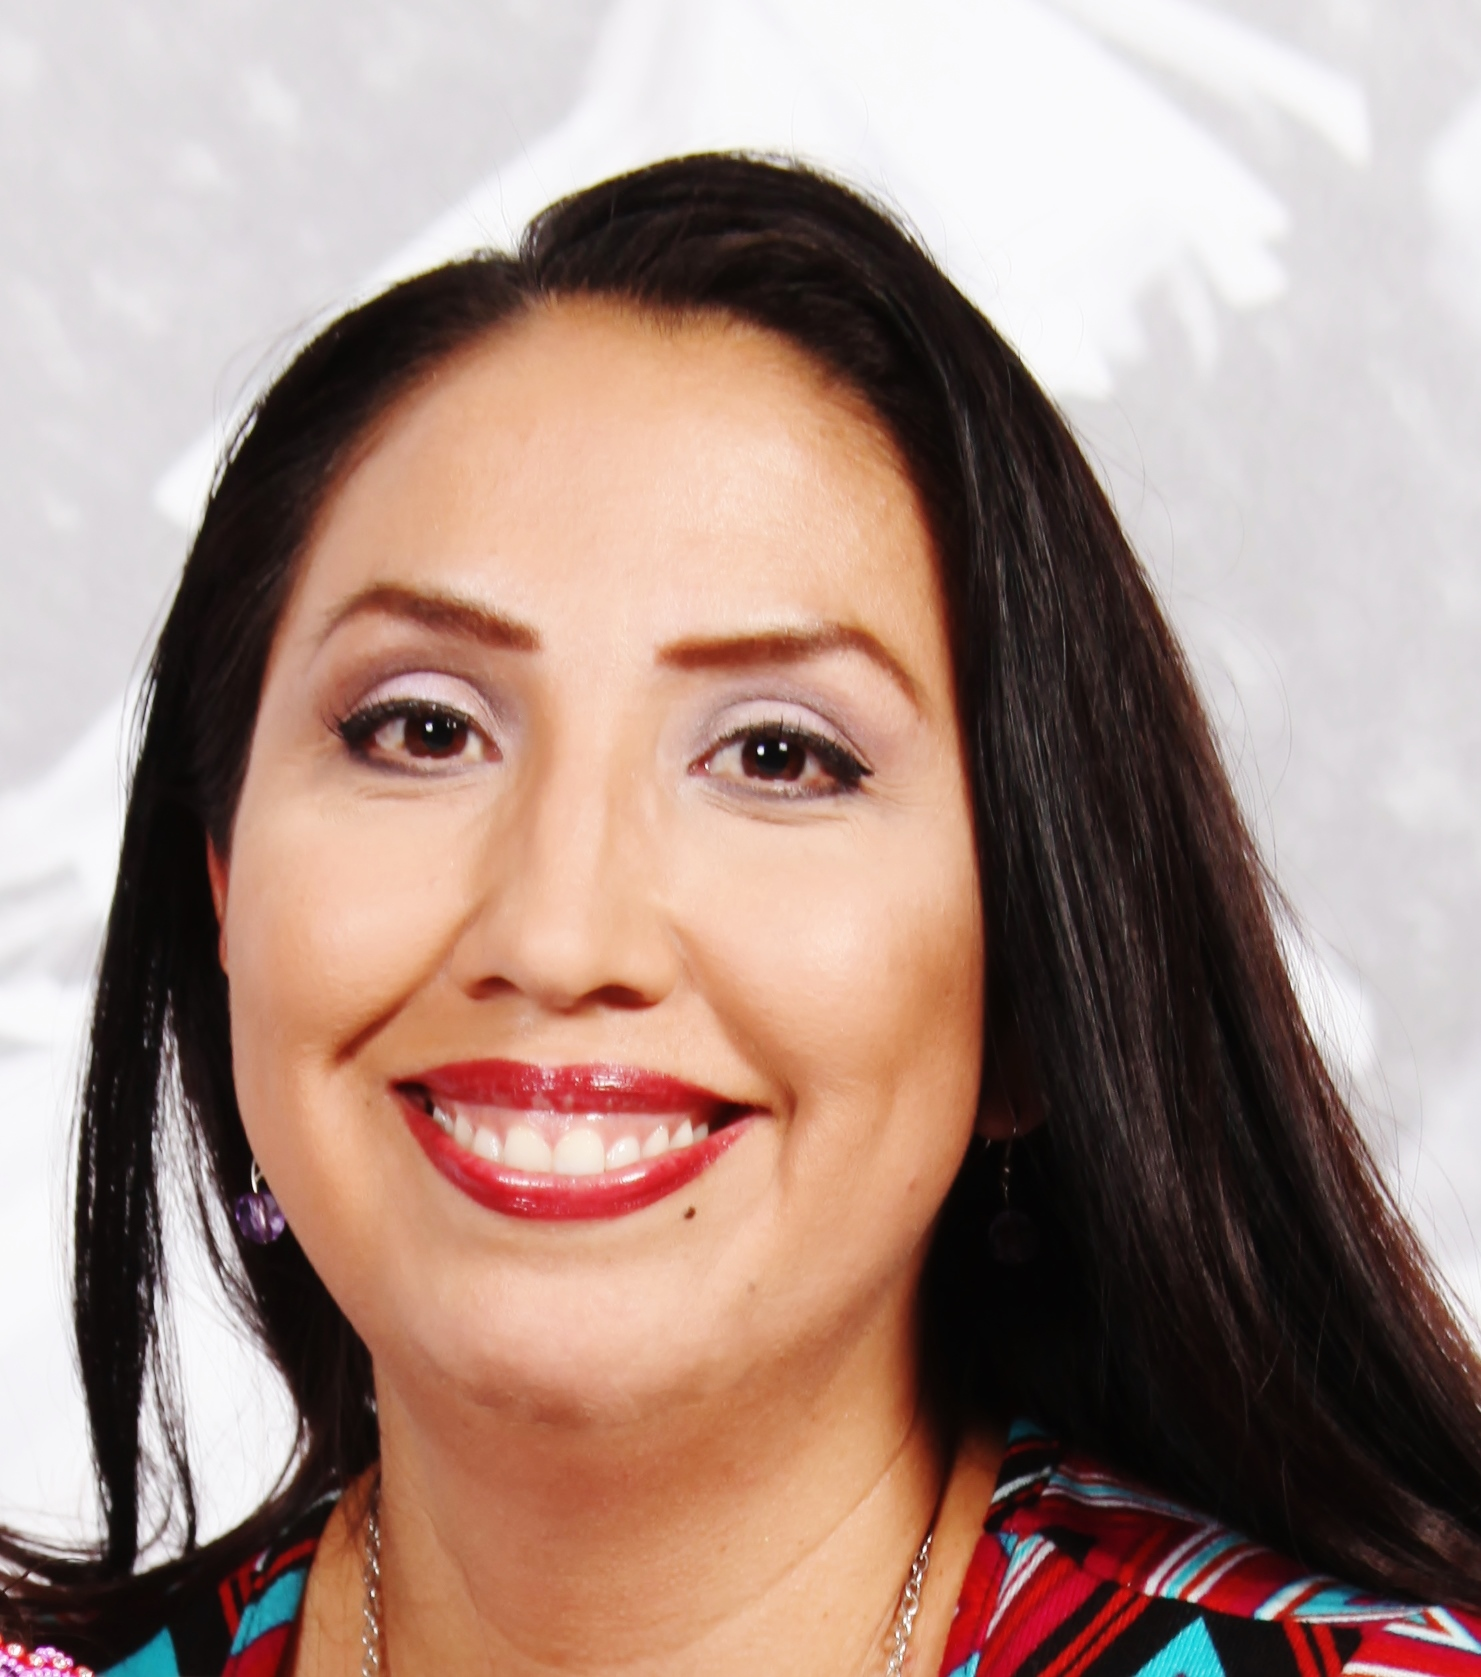 Toni Tsatoke-Mule: Native women are needed now more than ever